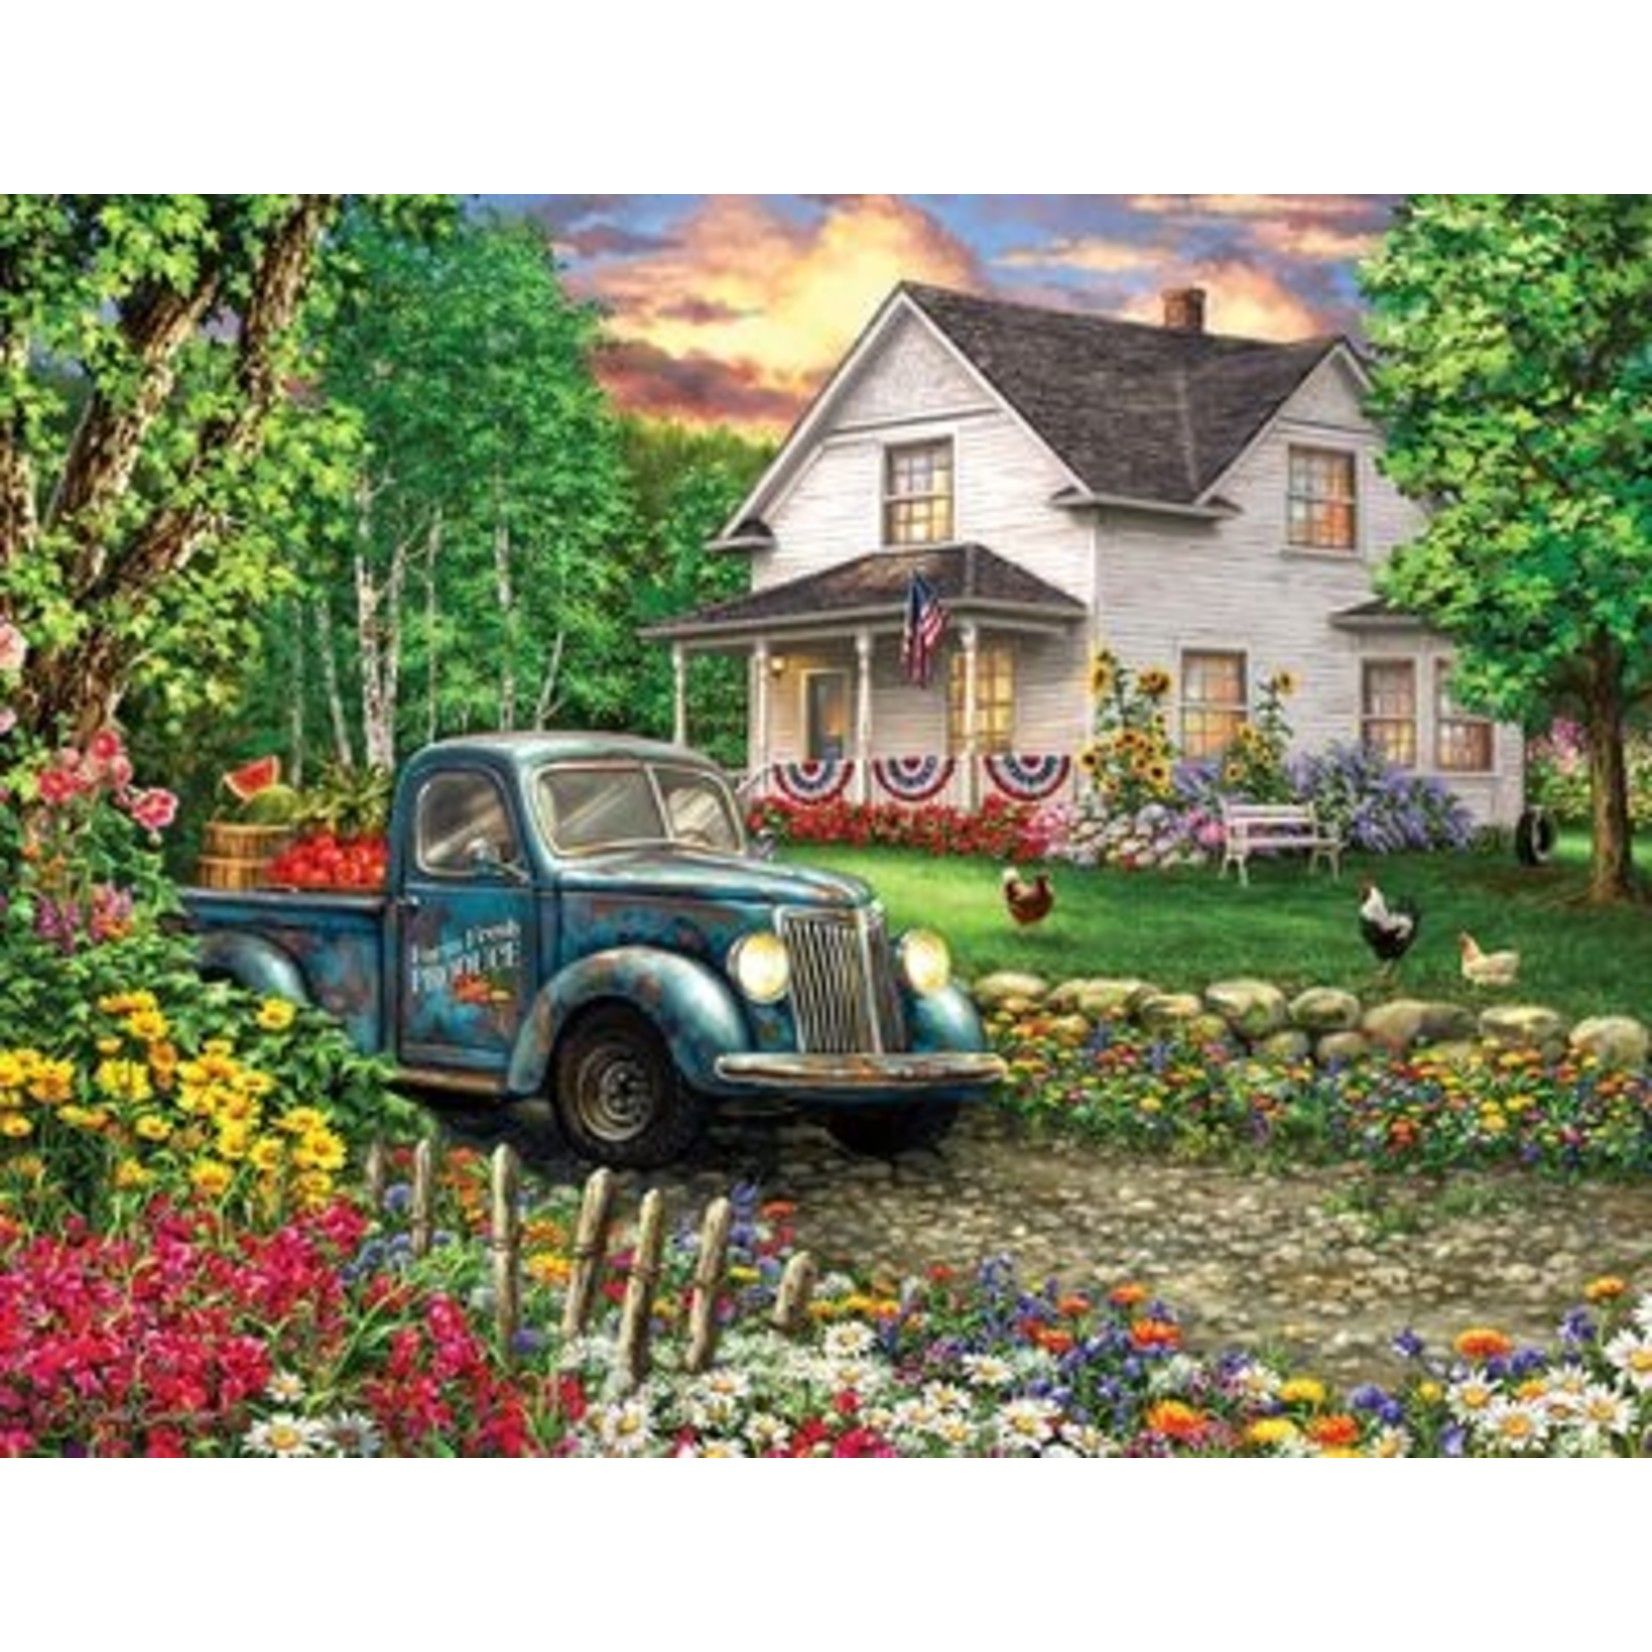 SIMPLER TIMES 500 PIECE JIGSAW PUZZLE